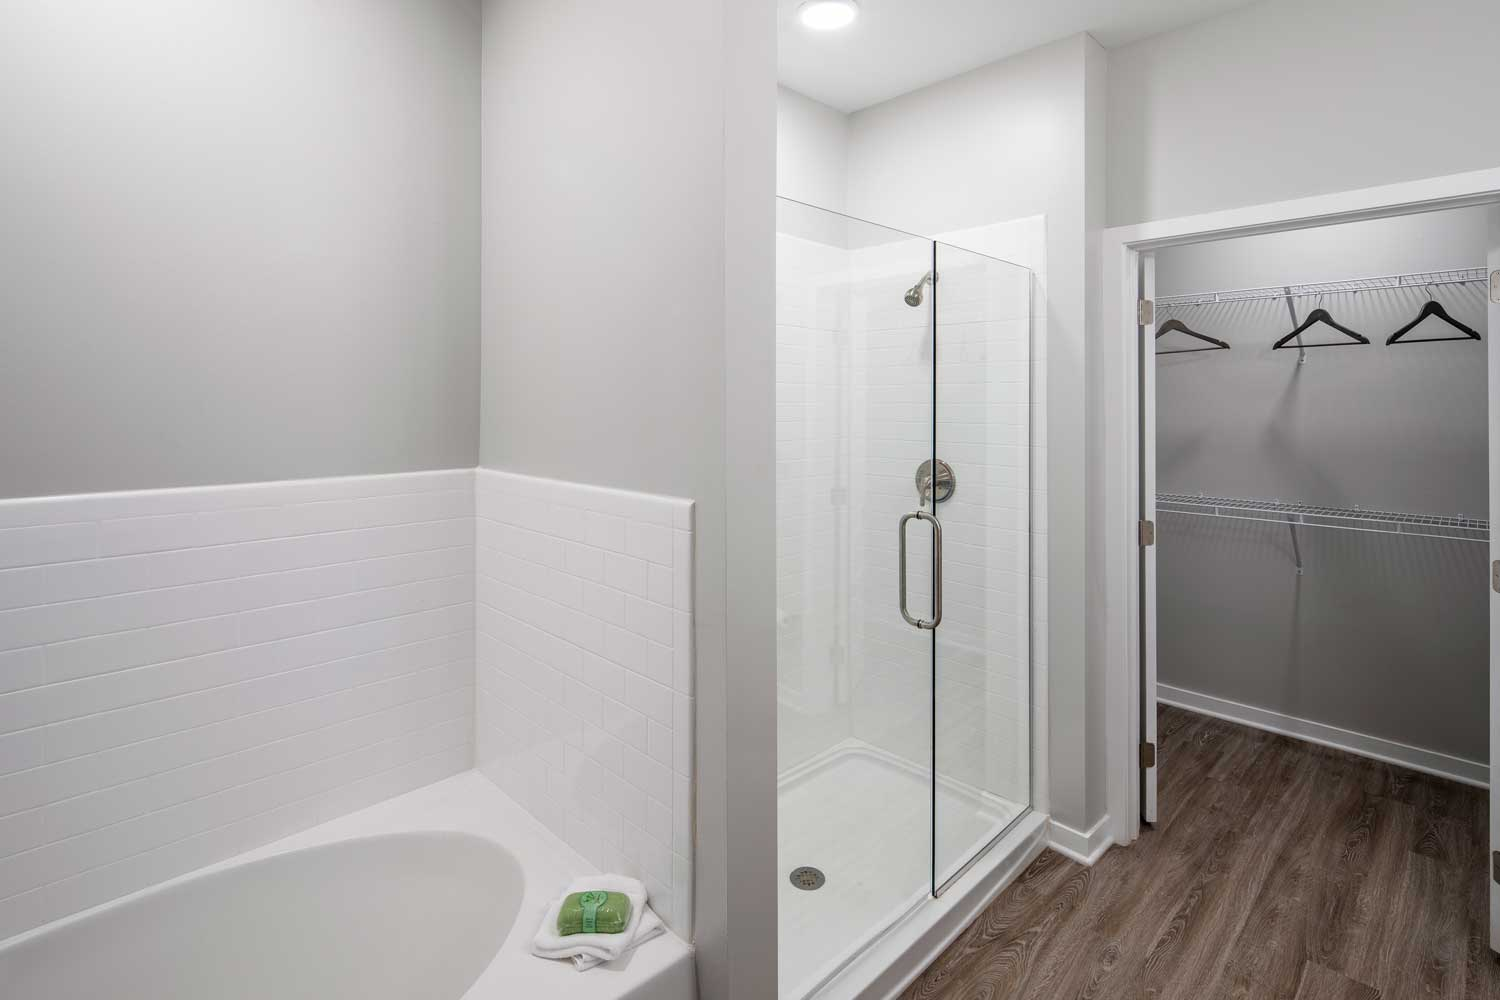 Walk-In Showers and Soaking Tubs at Sawgrass Point in Gonzales, Louisiana